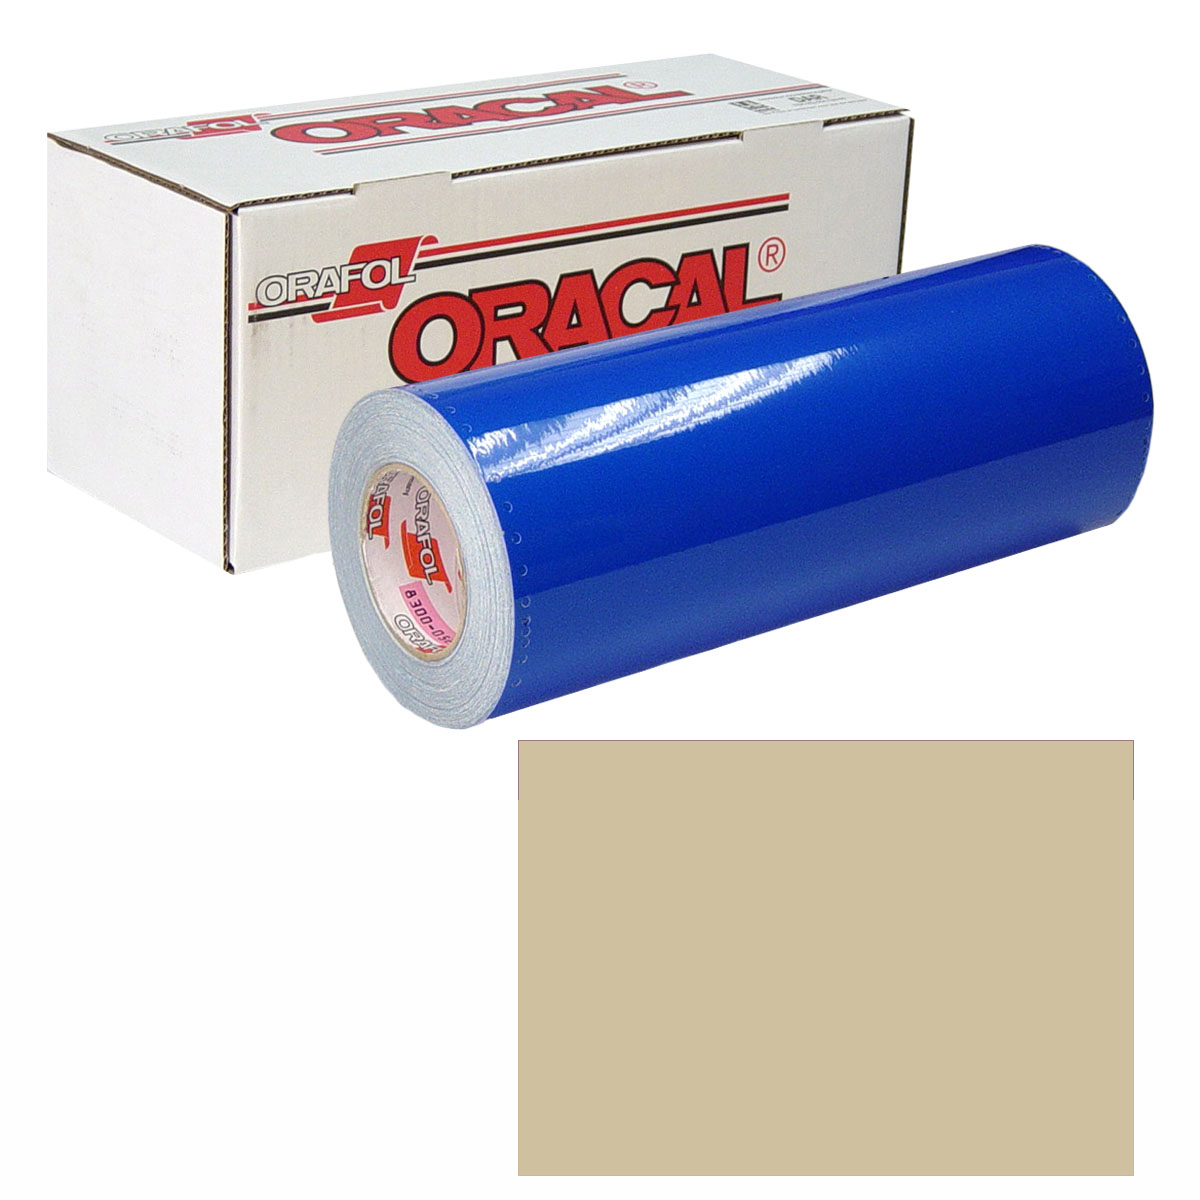 ORACAL 631 15In X 50Yd 082 Beige